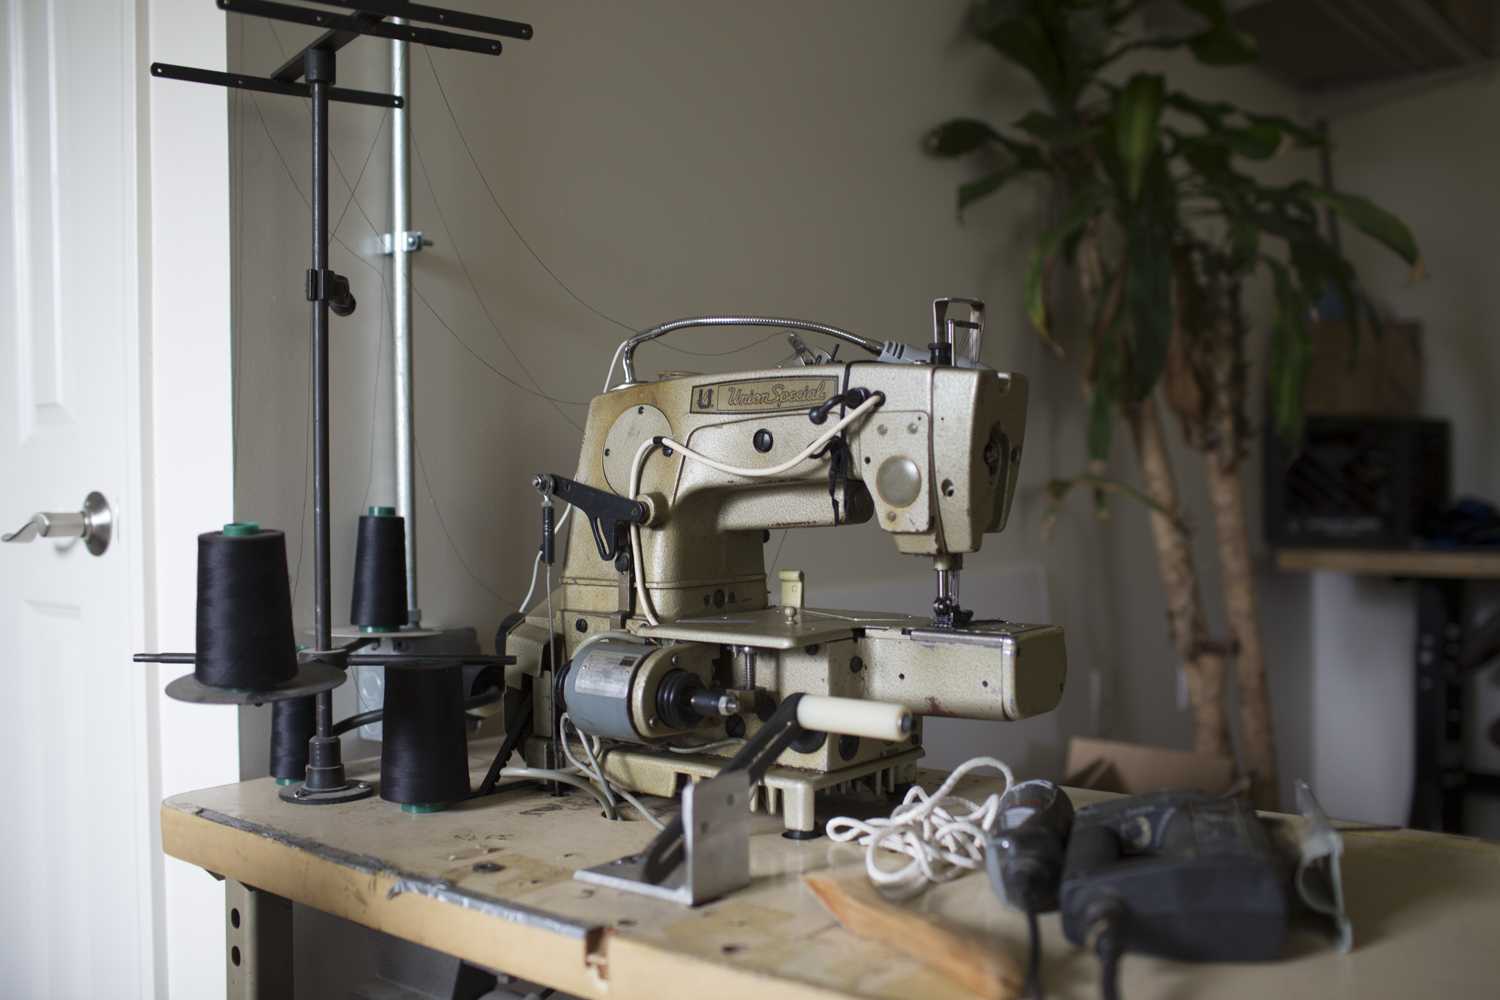 One of many vintage sewing machines in Renna's workshop